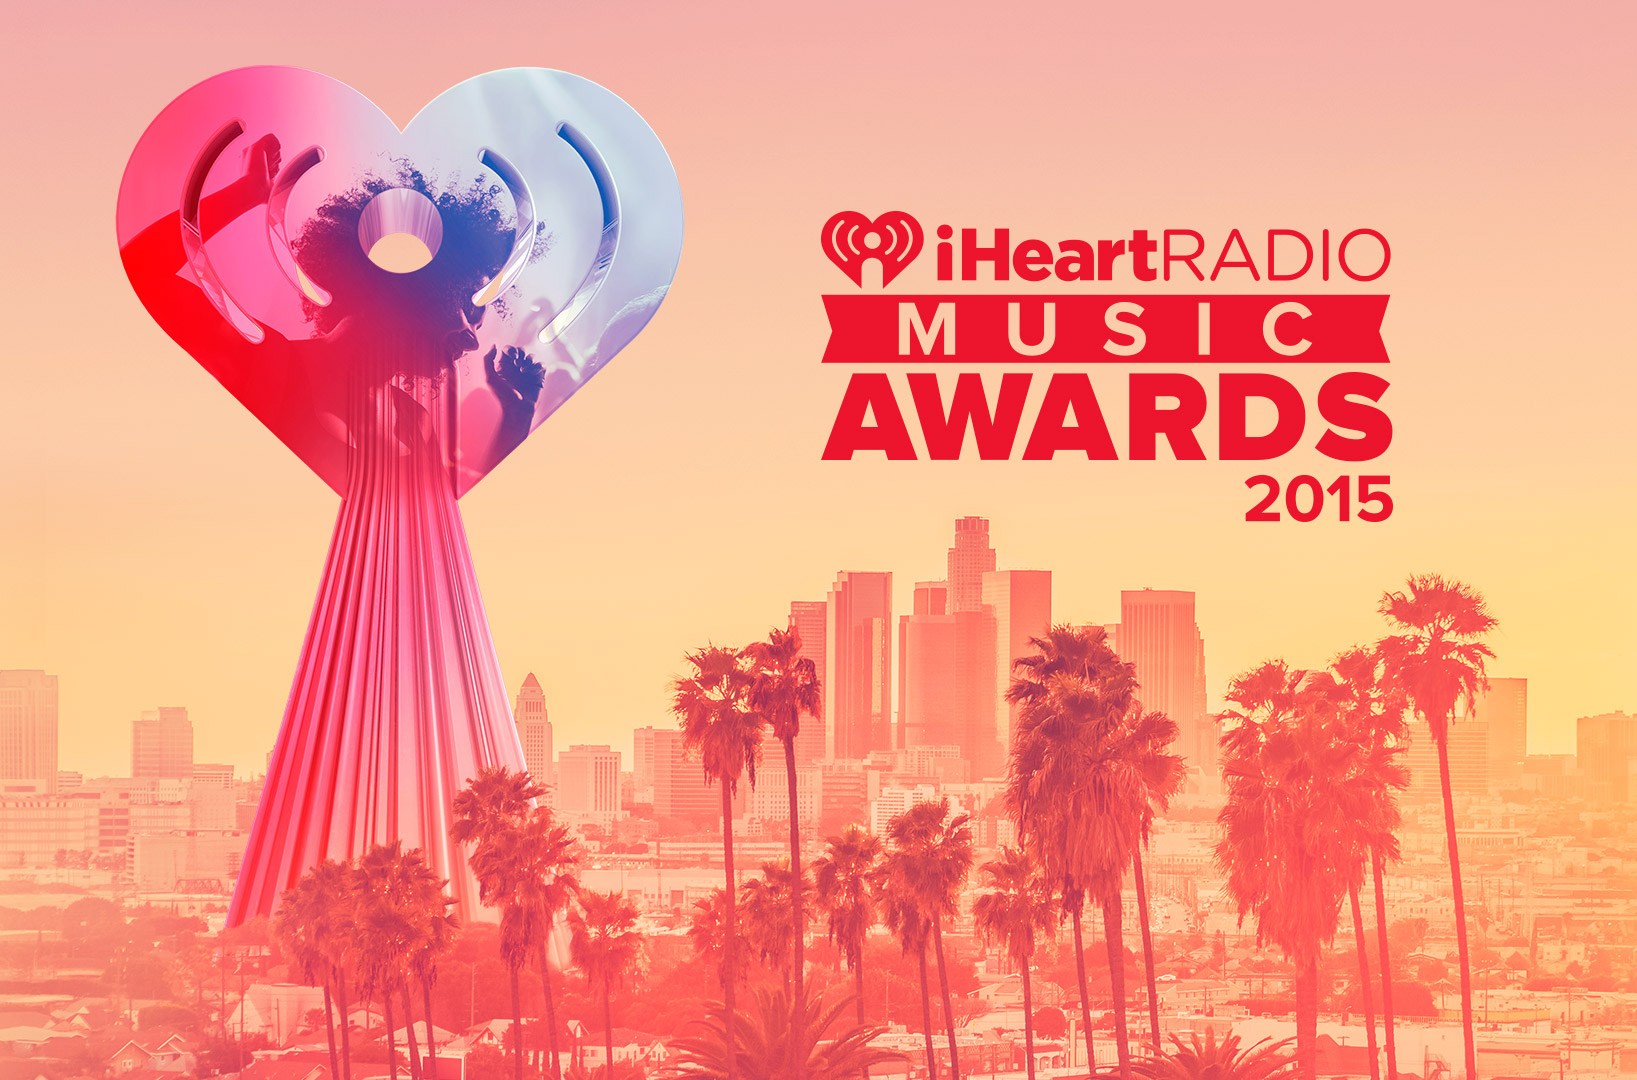 The iHeartRadio Music Awards 2015